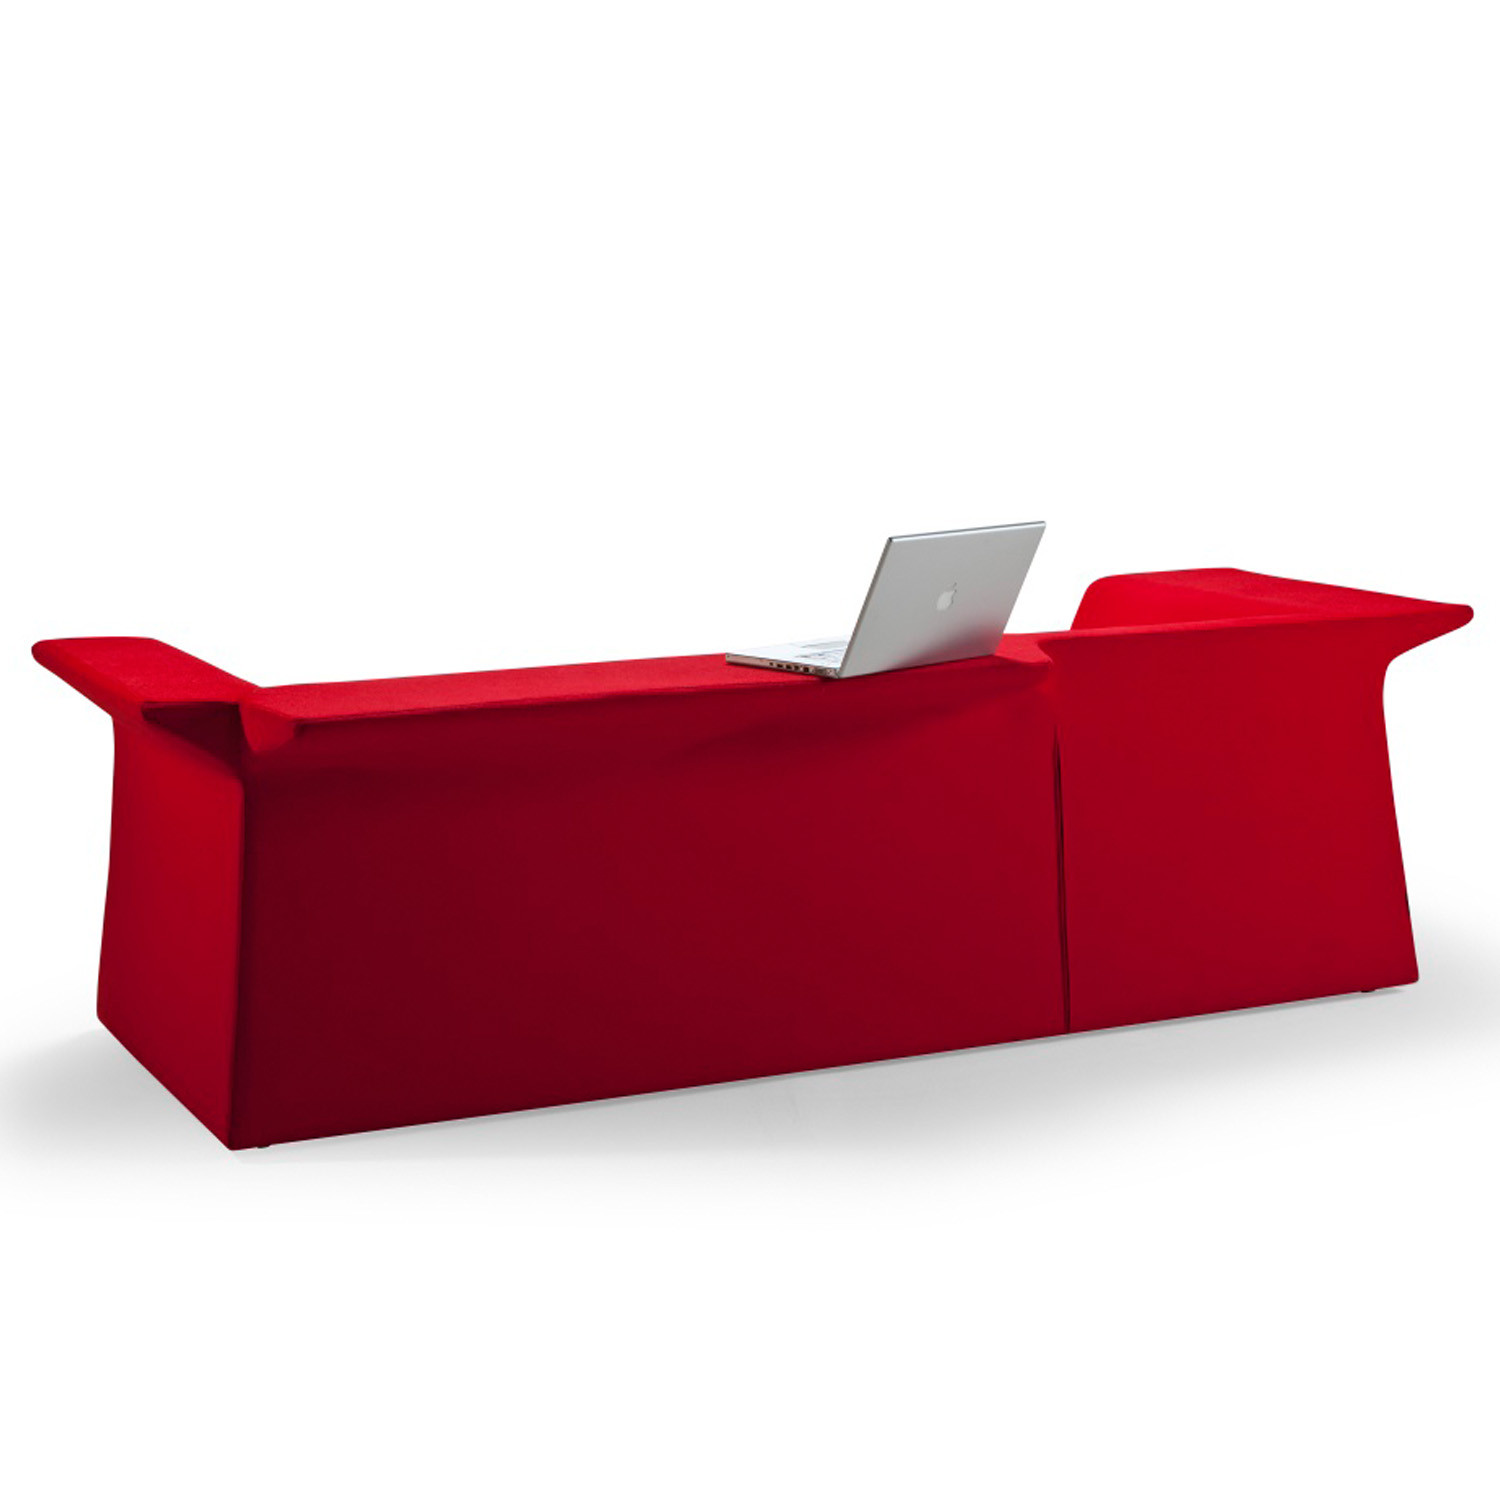 Ikaros Sofa with Shelf